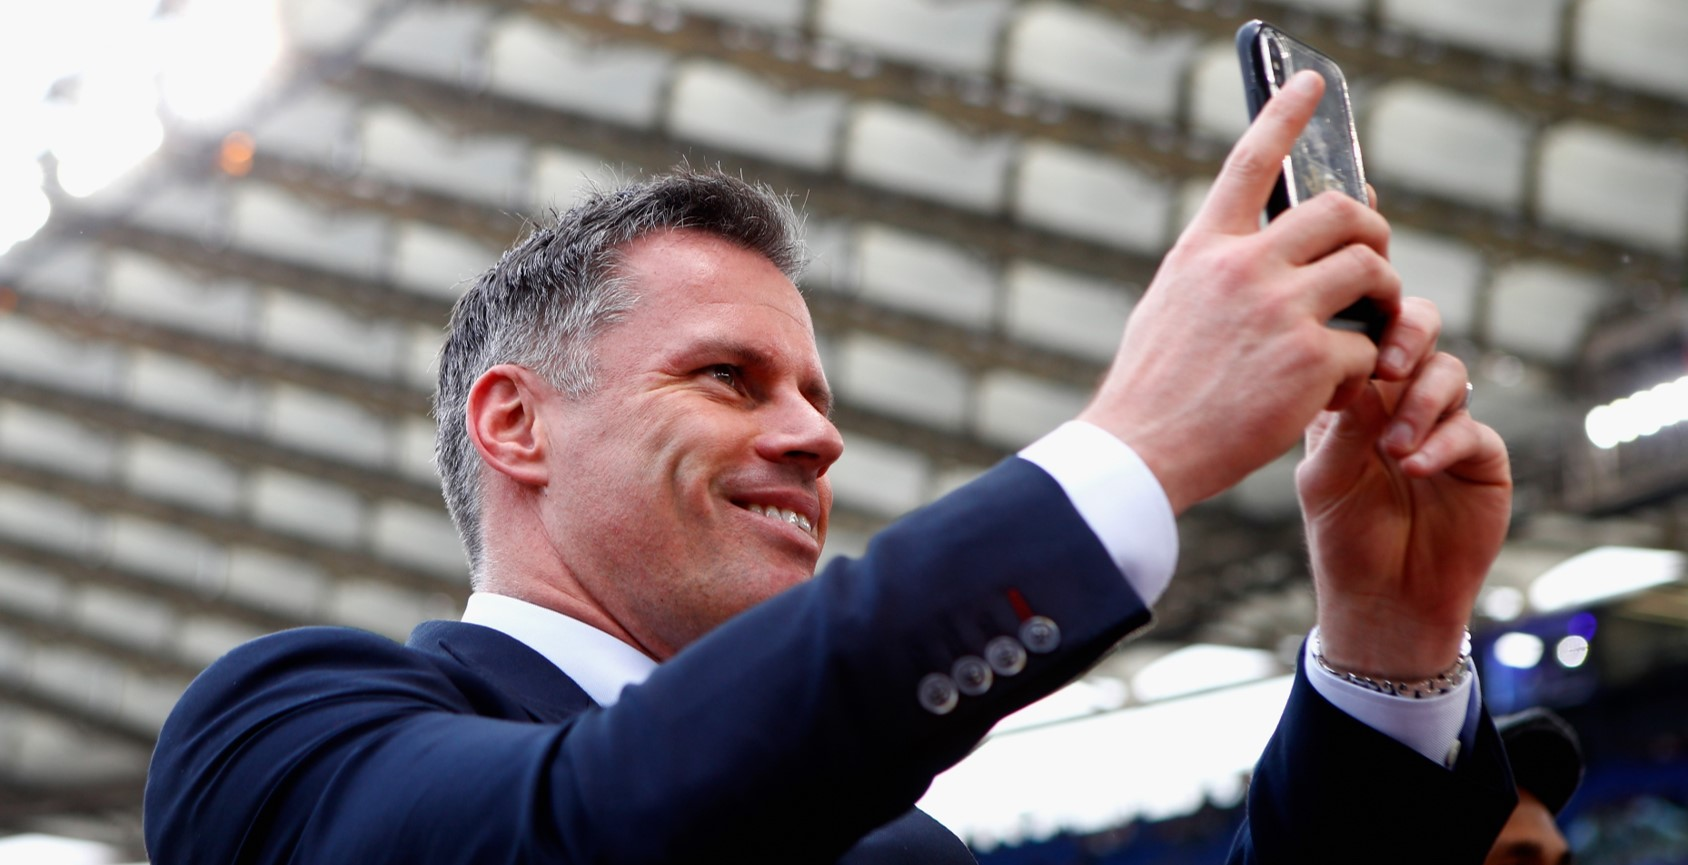 Jamie Carragher quick to remind Gary Neville of his confident prediction that 'United are going to beat Liverpool on Sunday'